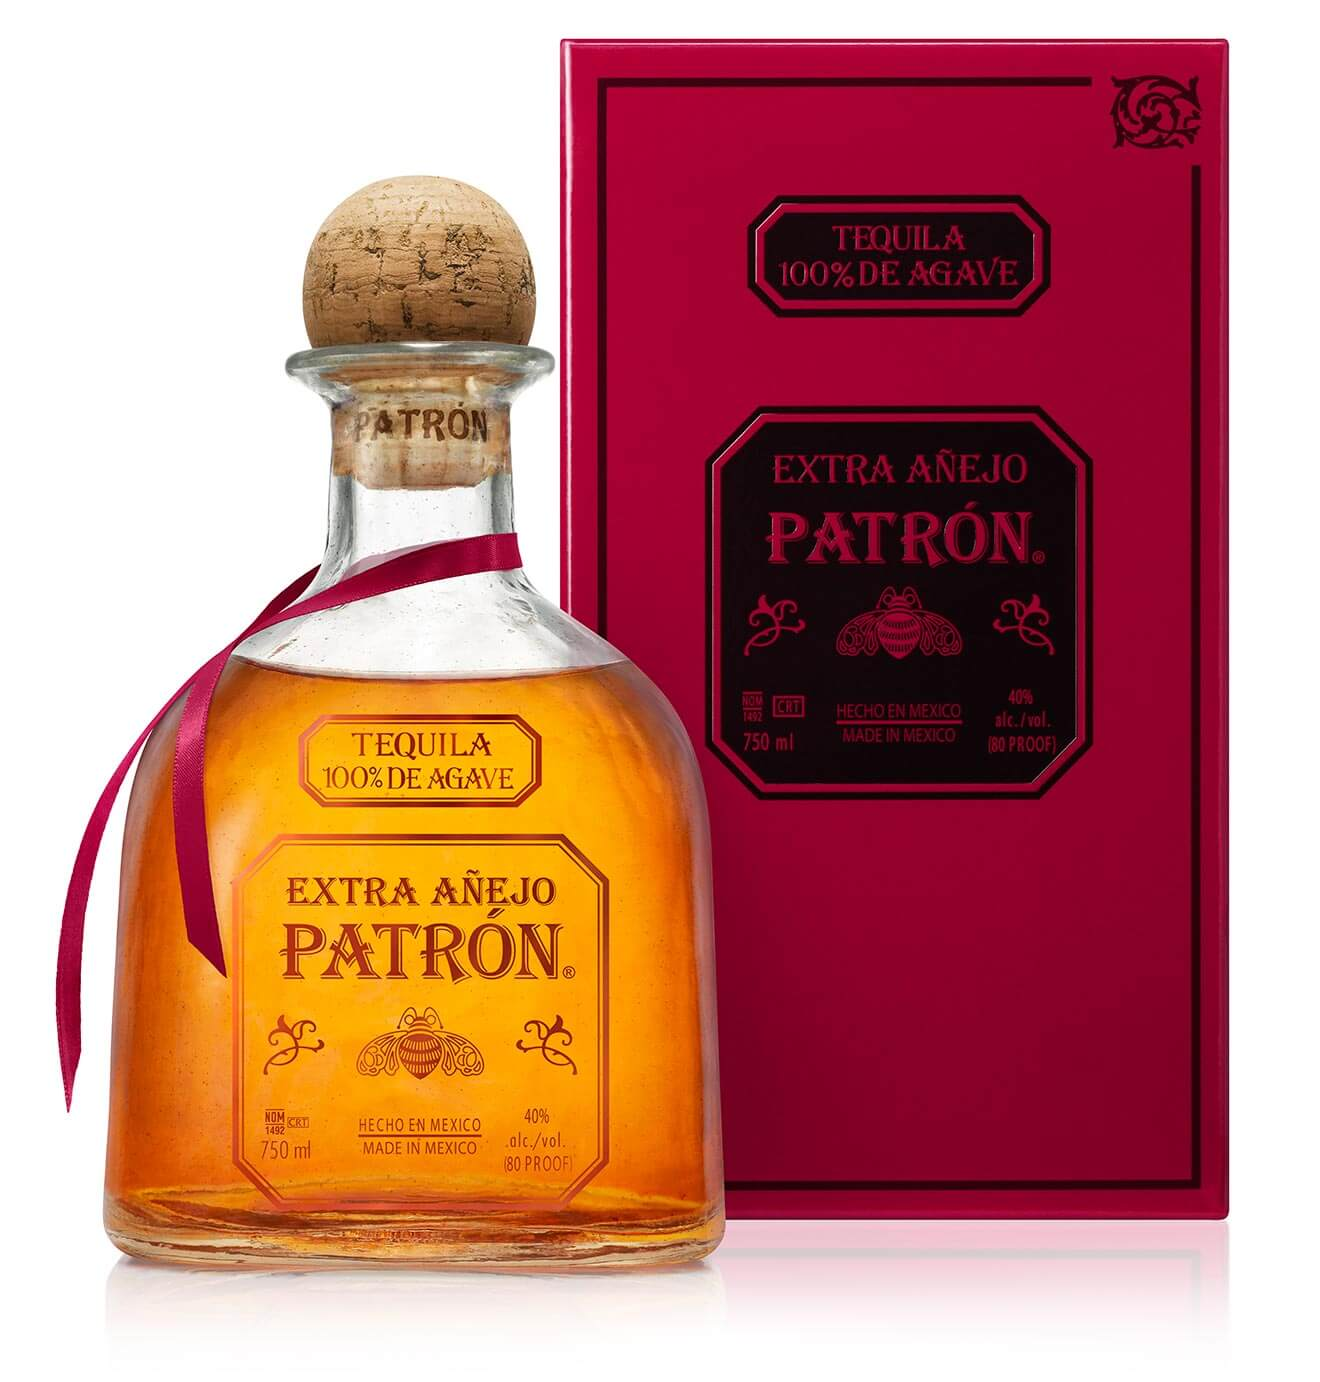 Patrón Extra Añejo Tequila, bottle and package